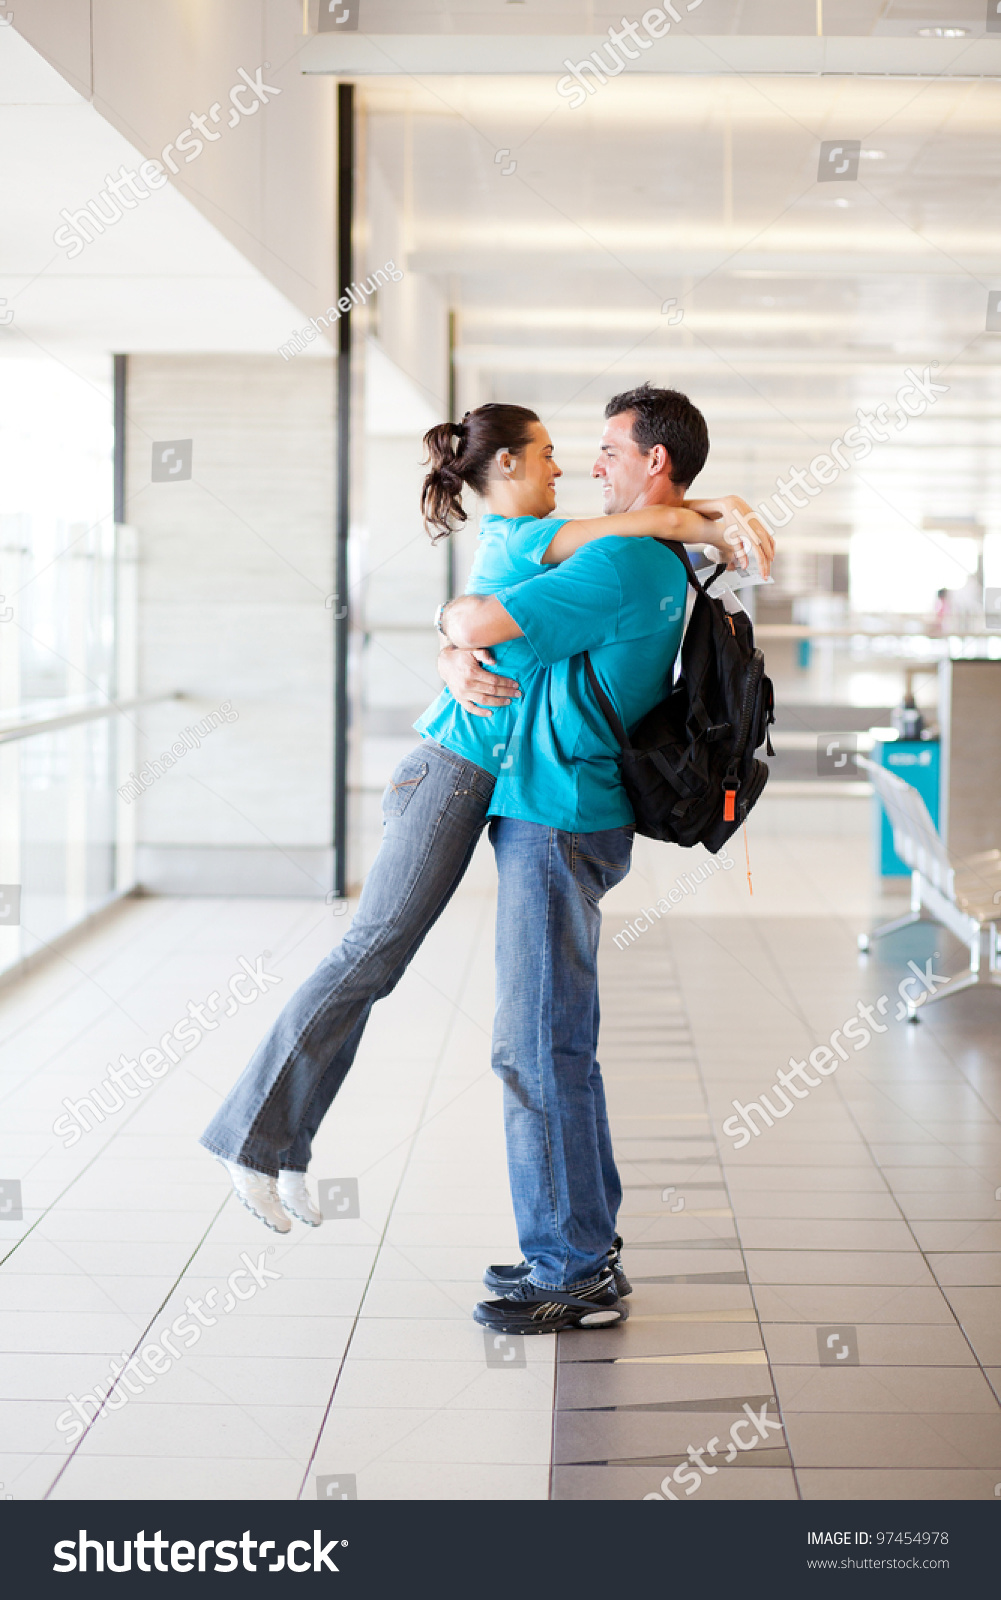 happy young couple hugging at airport. Happy Young Couple Hugging Airport Stock Photo 97454978   Shutterstock